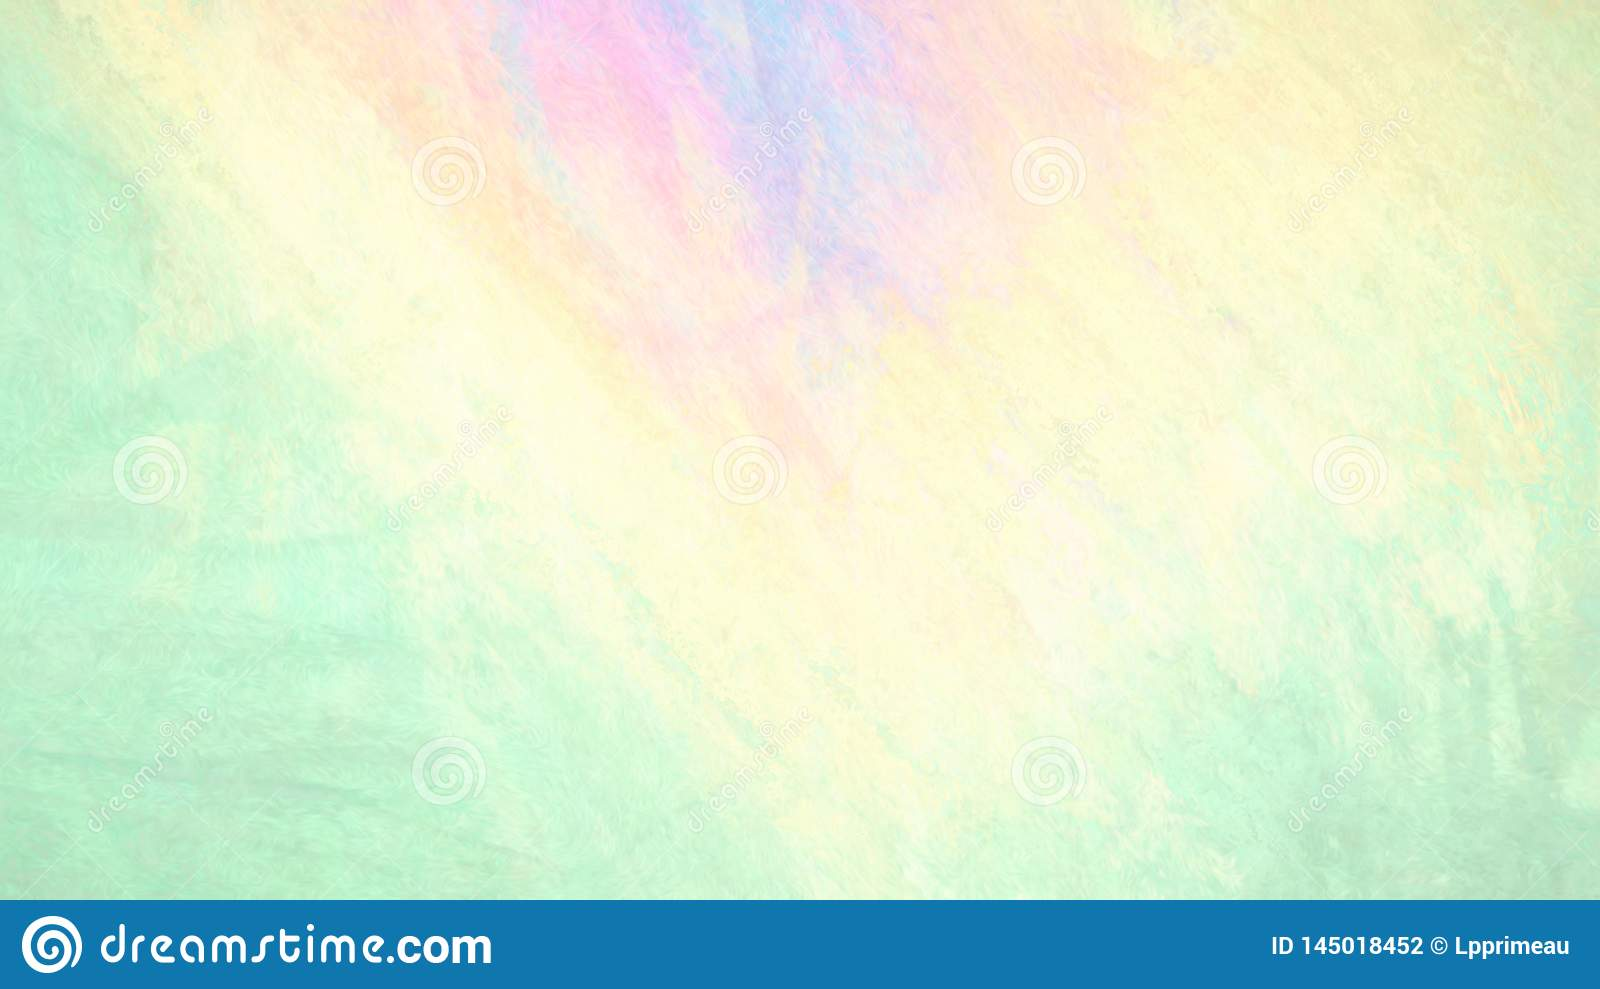 Colorful Background Chalk Smudge In Pink Orange Green And